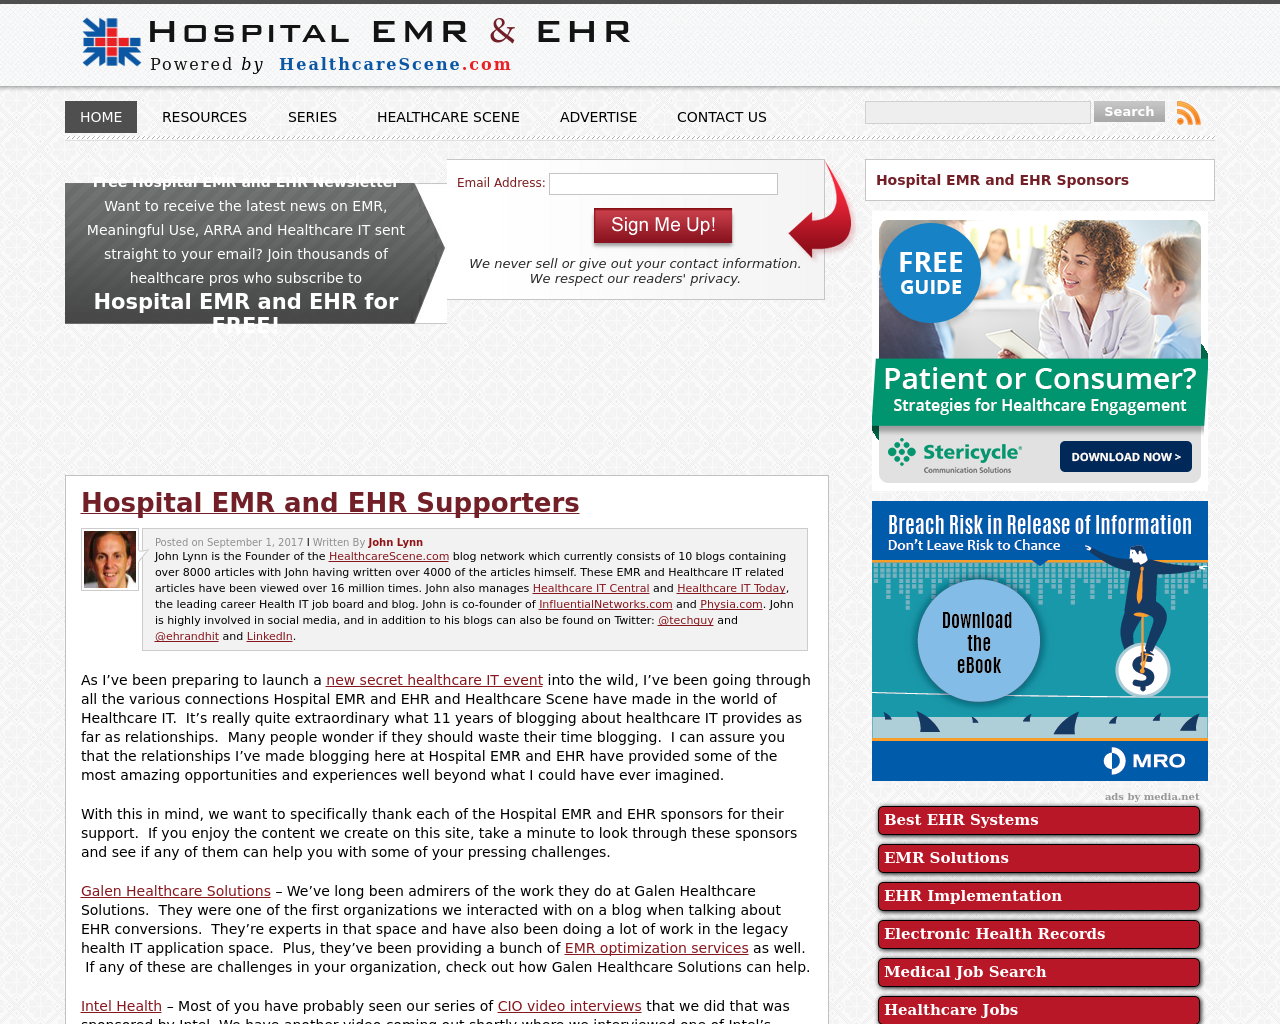 Hospital-EMR-and-EHR-Advertising-Reviews-Pricing